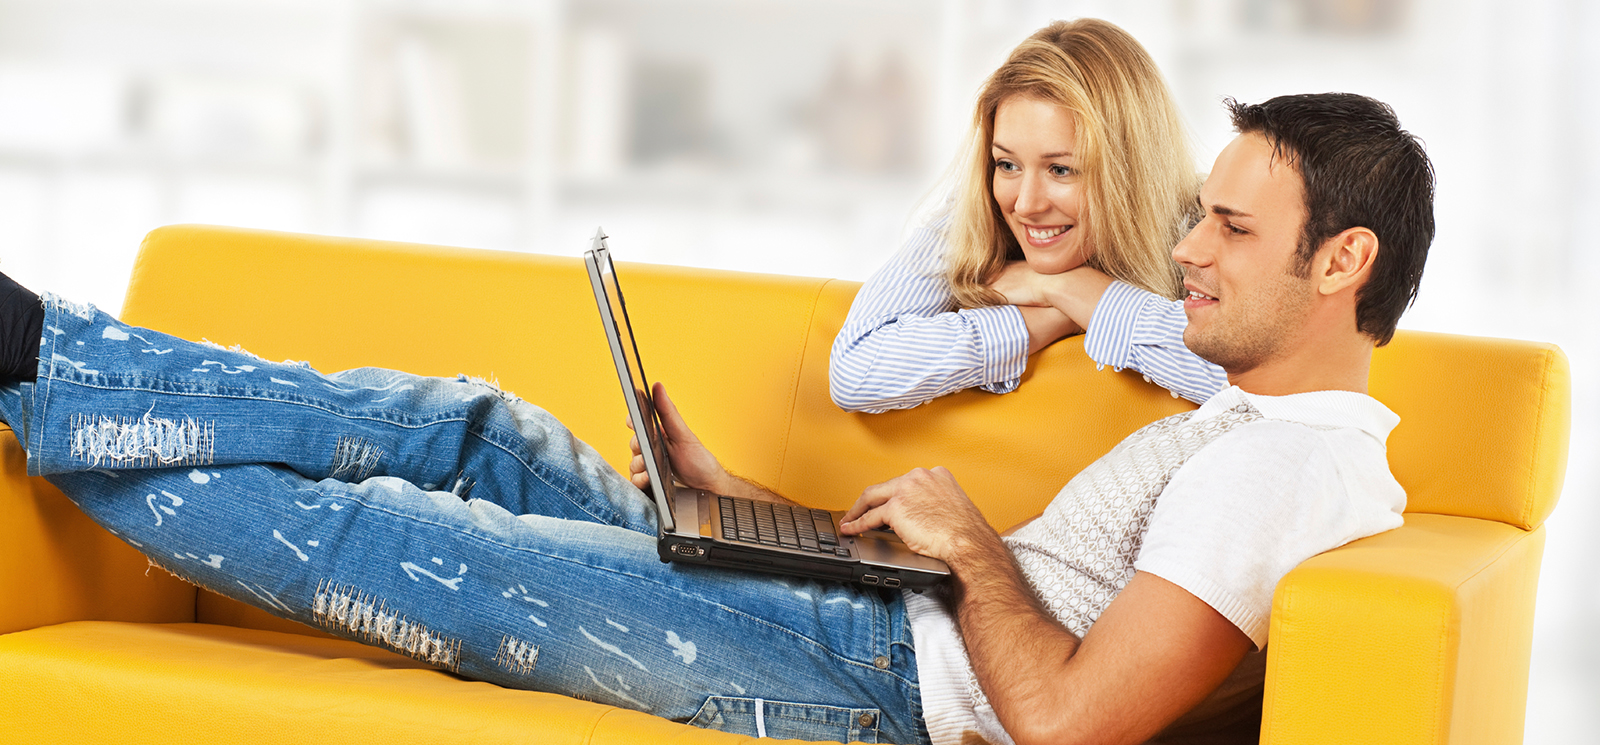 Man sitting on couch looking at laptop.  Woman looking over his shoulder.